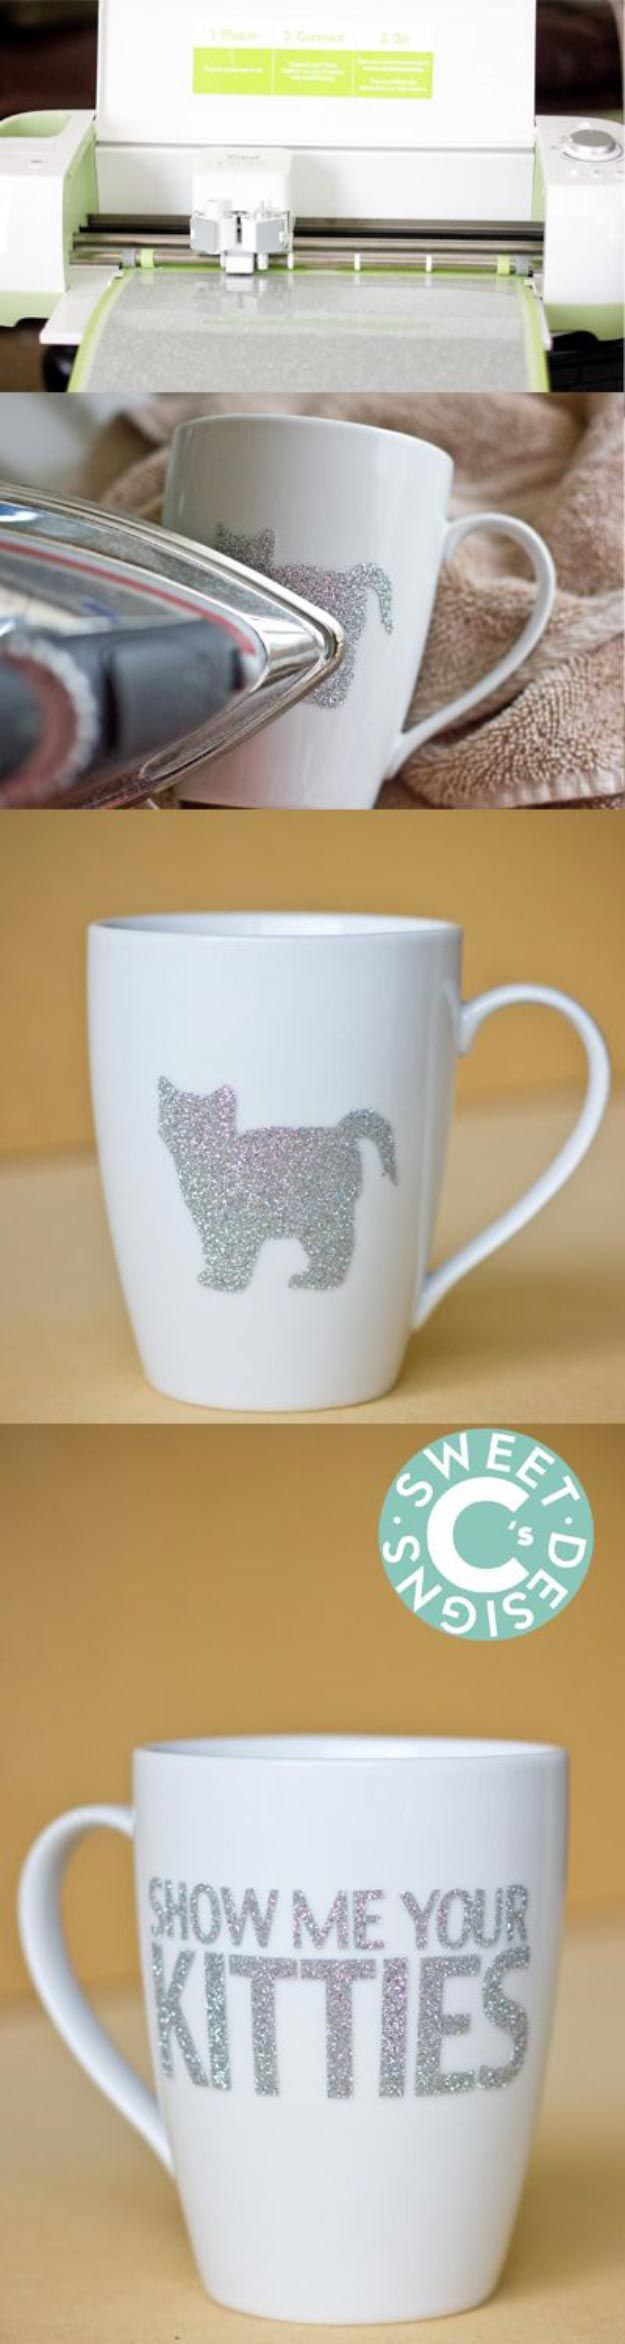 Show Me Your Kitties Mug   DIY Cricut Crafts & Ideas   Fun and Cute Projects for Kids and Adults by DIY Ready at http://diyready.com/diy-cricut-crafts/